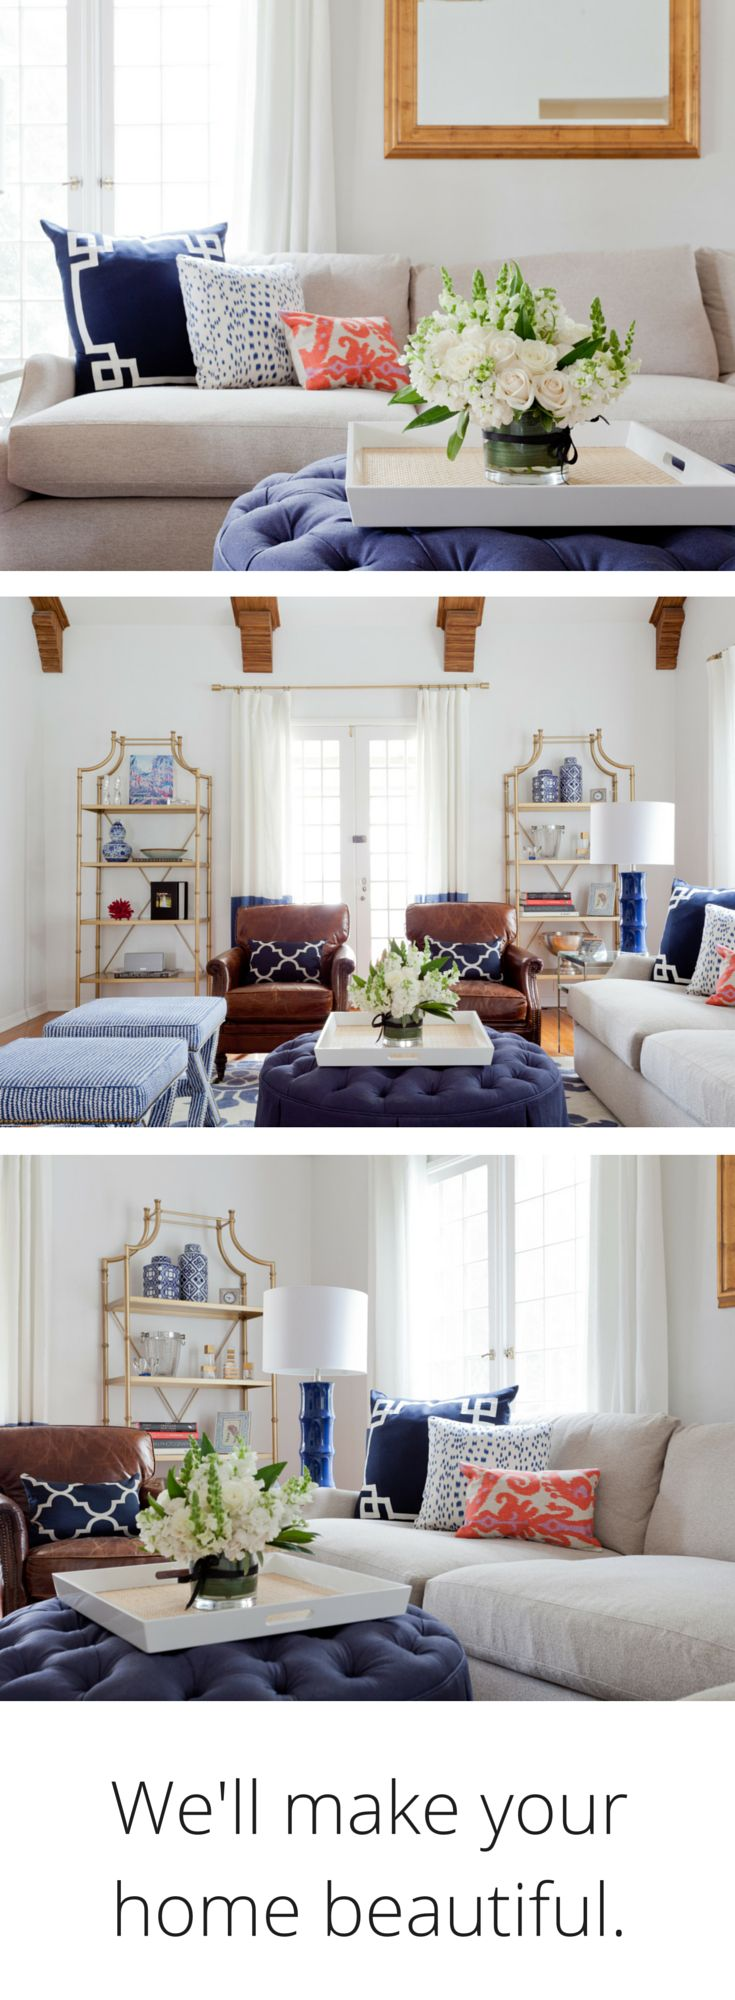 best housey stuff and ideas images on pinterest